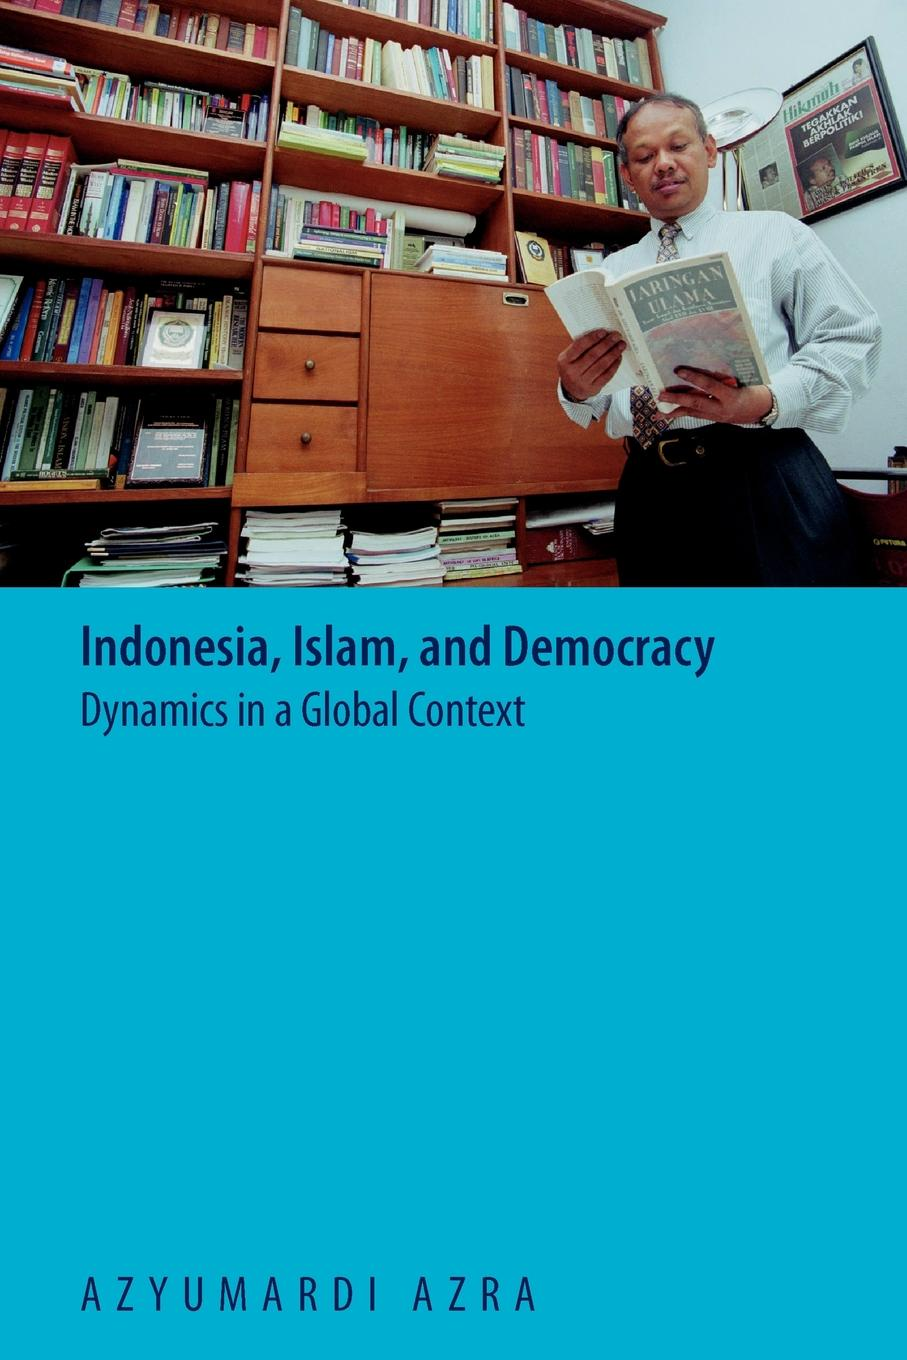 Azyumardi Azra Indonesia, Islam, and Democracy. Dynamics in a Global Context dmitri makarov islam and development at micro level community activities of the islamic movement in israel